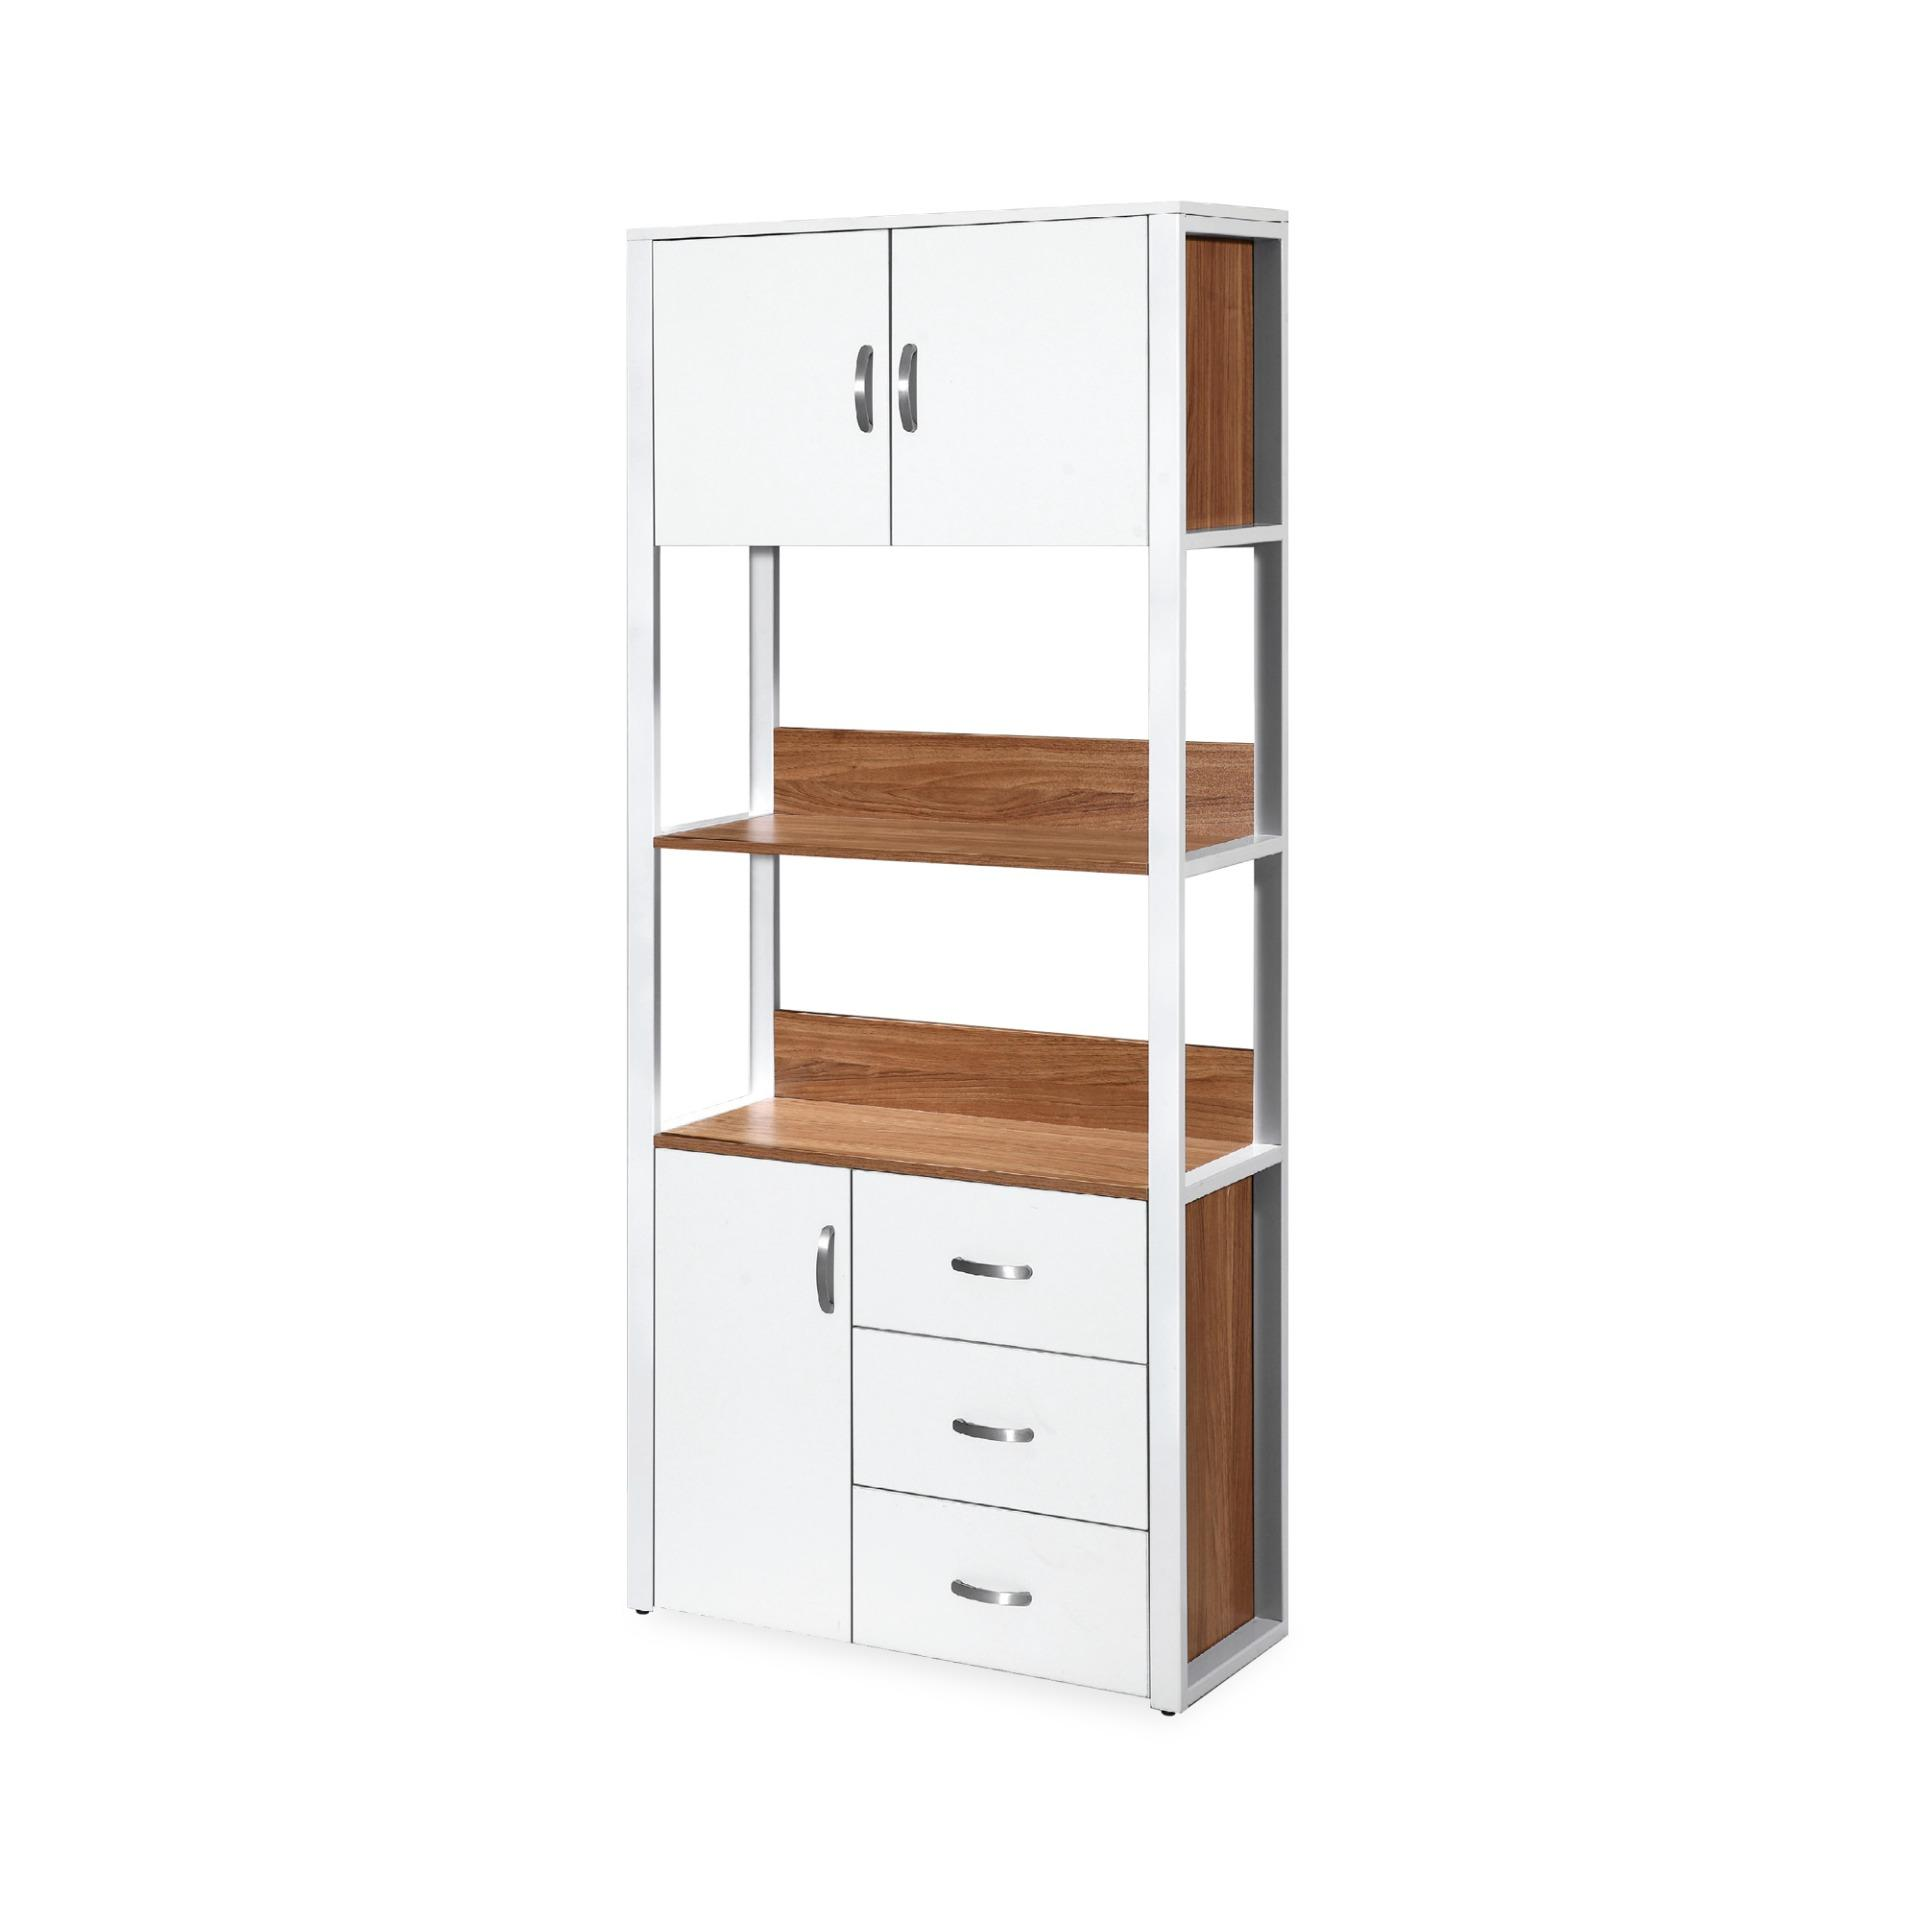 Amando Book Cabinet With Storage Shelves (FREE DELIVERY)(FREE ASSEMBLY)